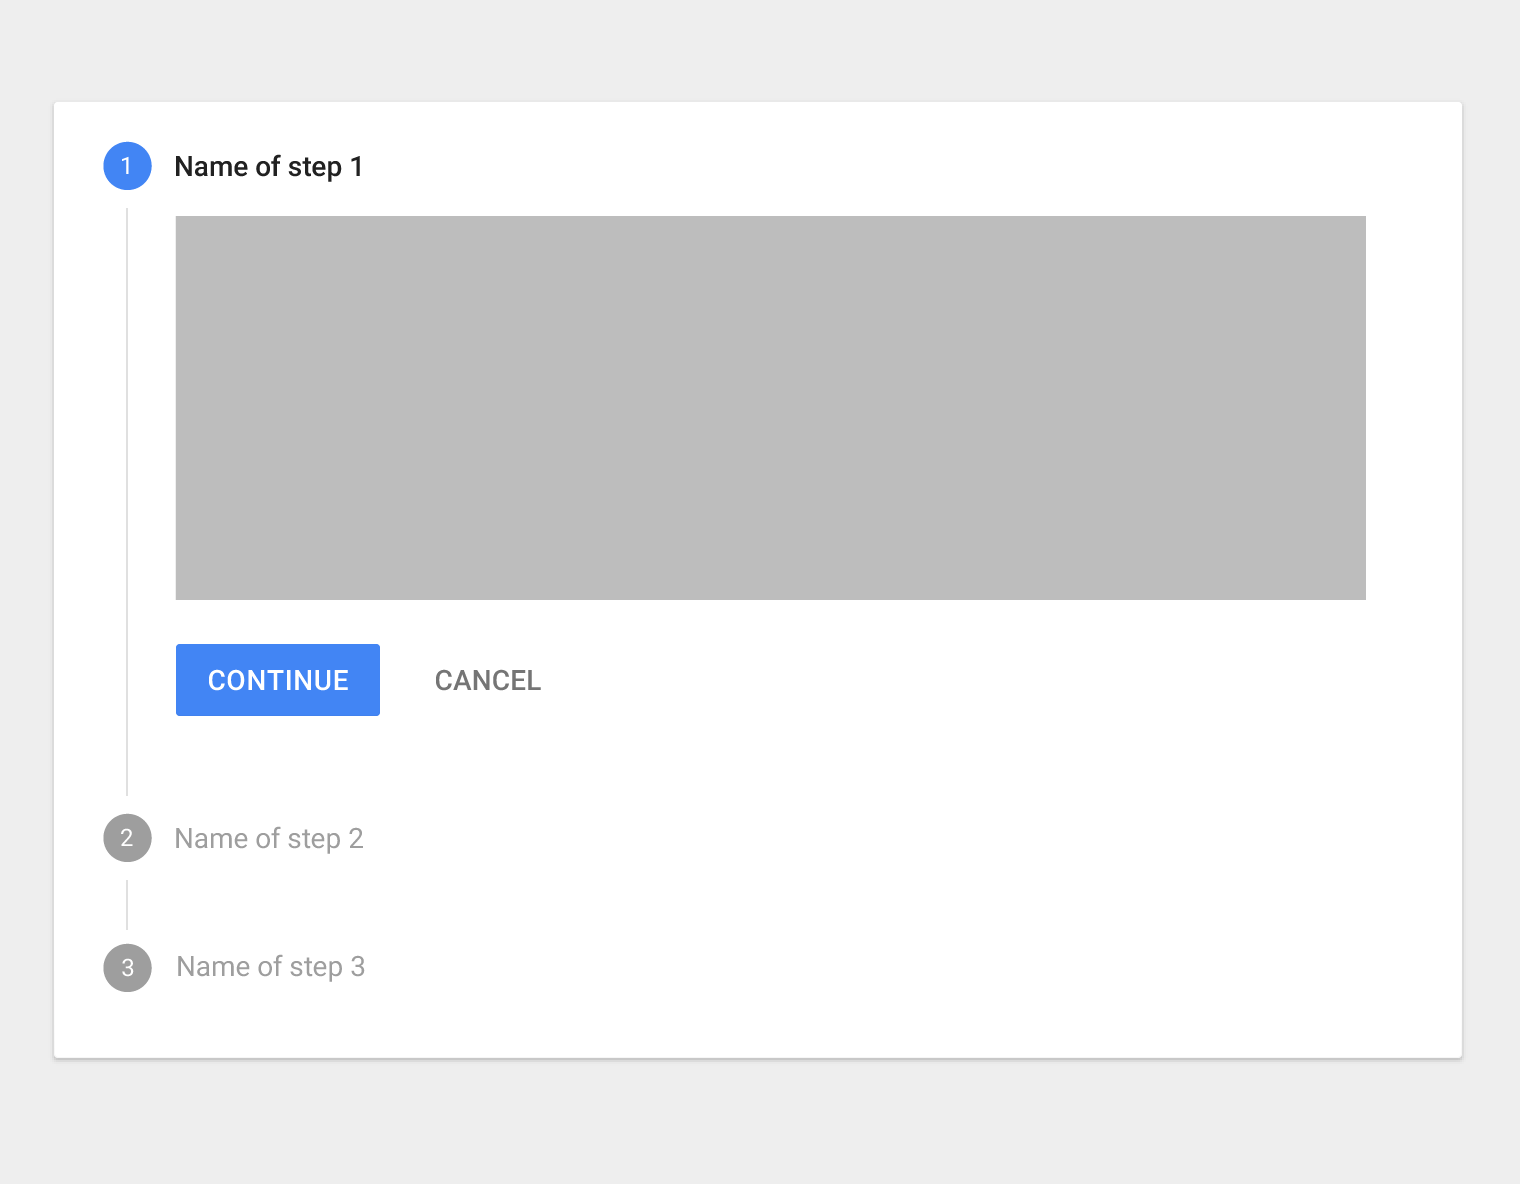 Steppers - Components - Material design guidelines